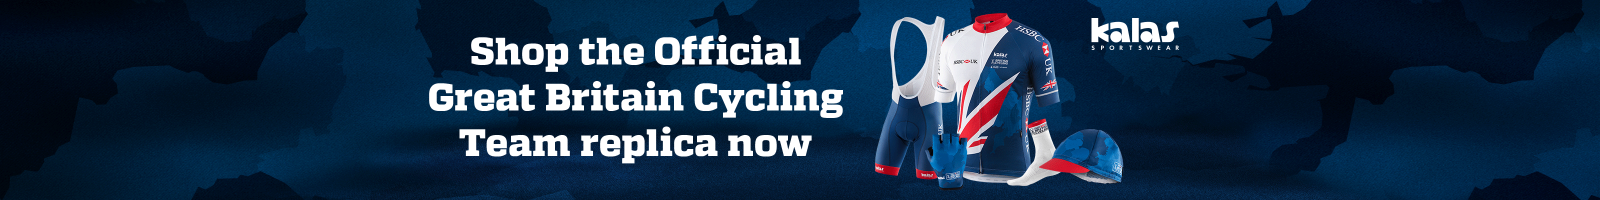 Shop the KALAS inspired cycling kit range